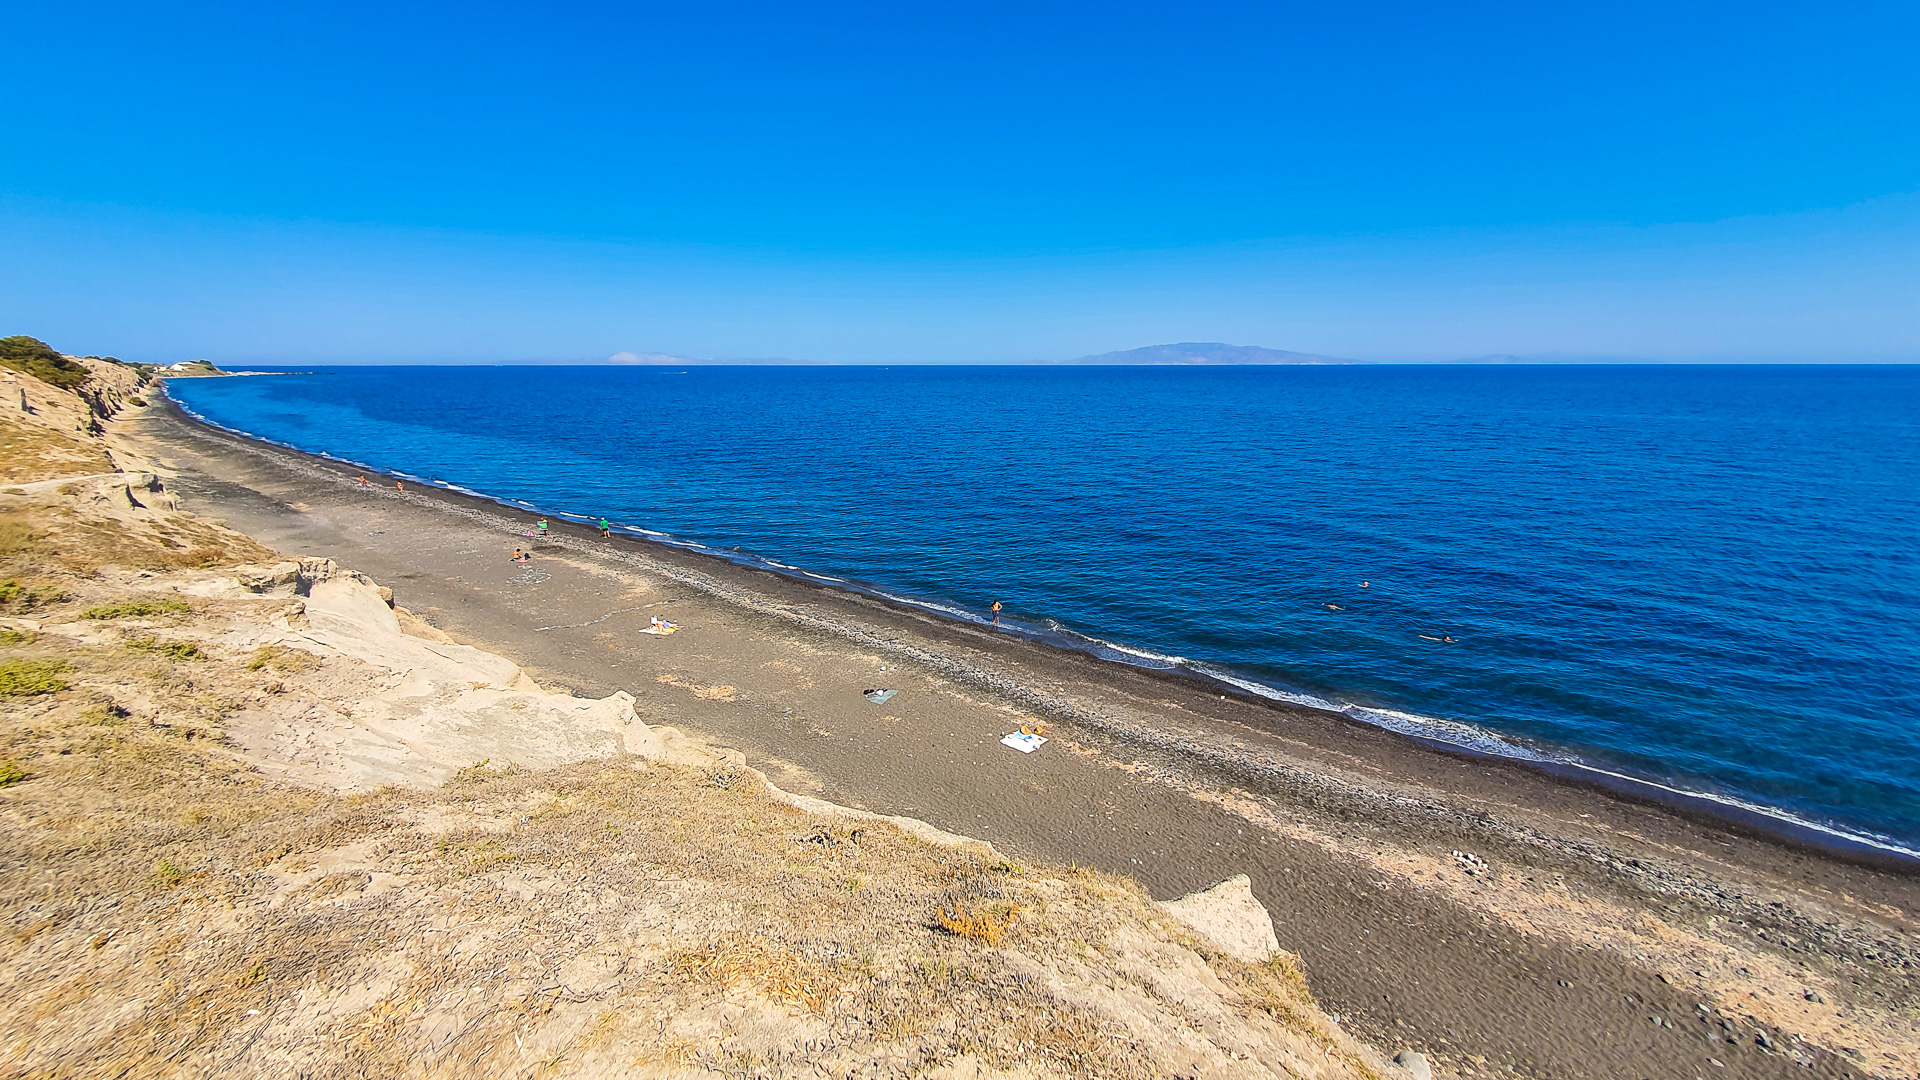 Wide view of the Baxedes Beach